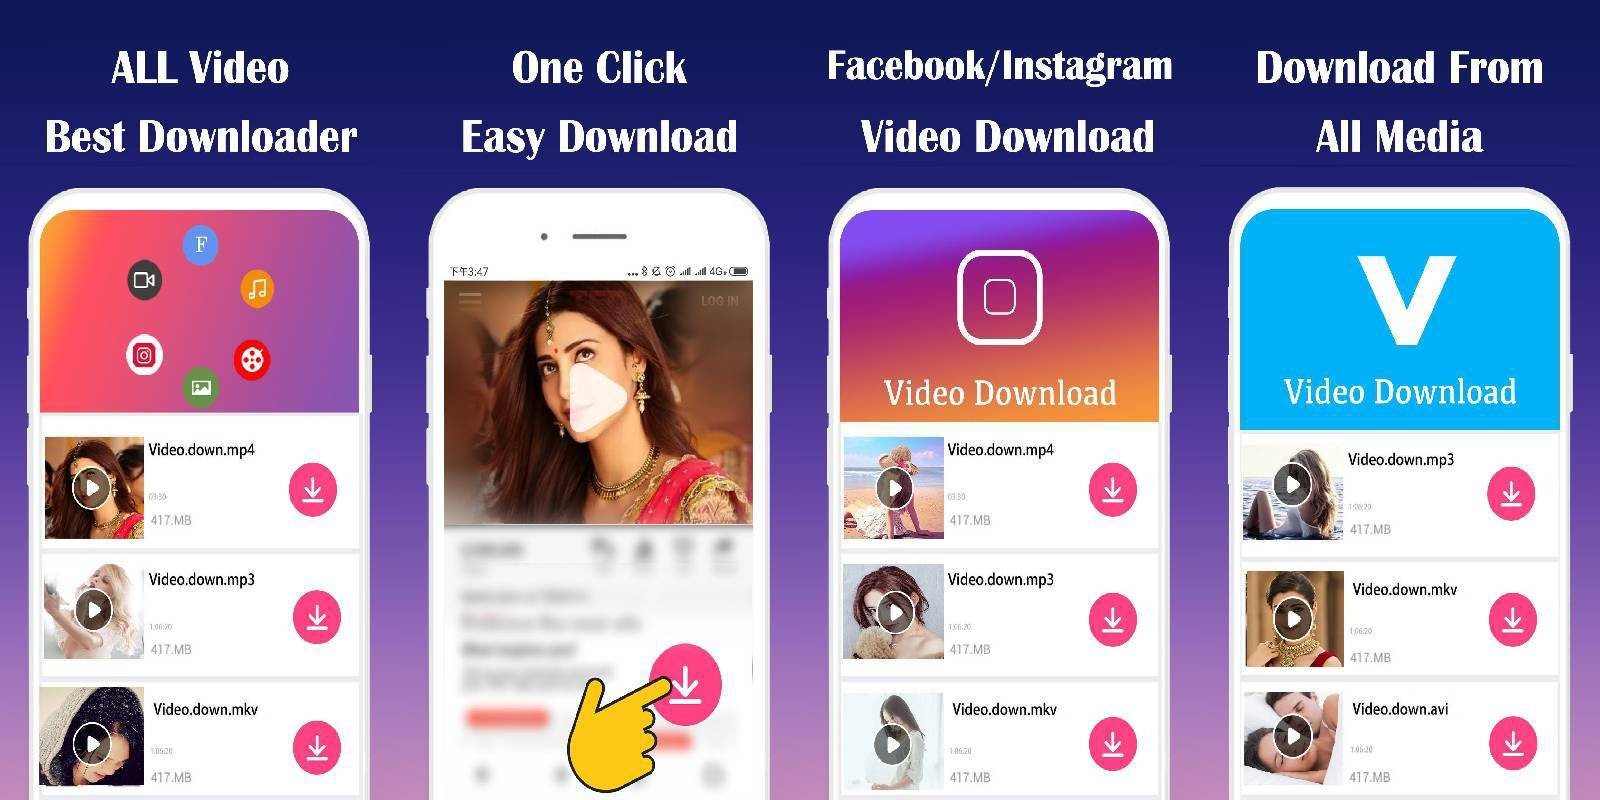 All Video Downloader Android App Template by ExoxiaInfotech  Codester